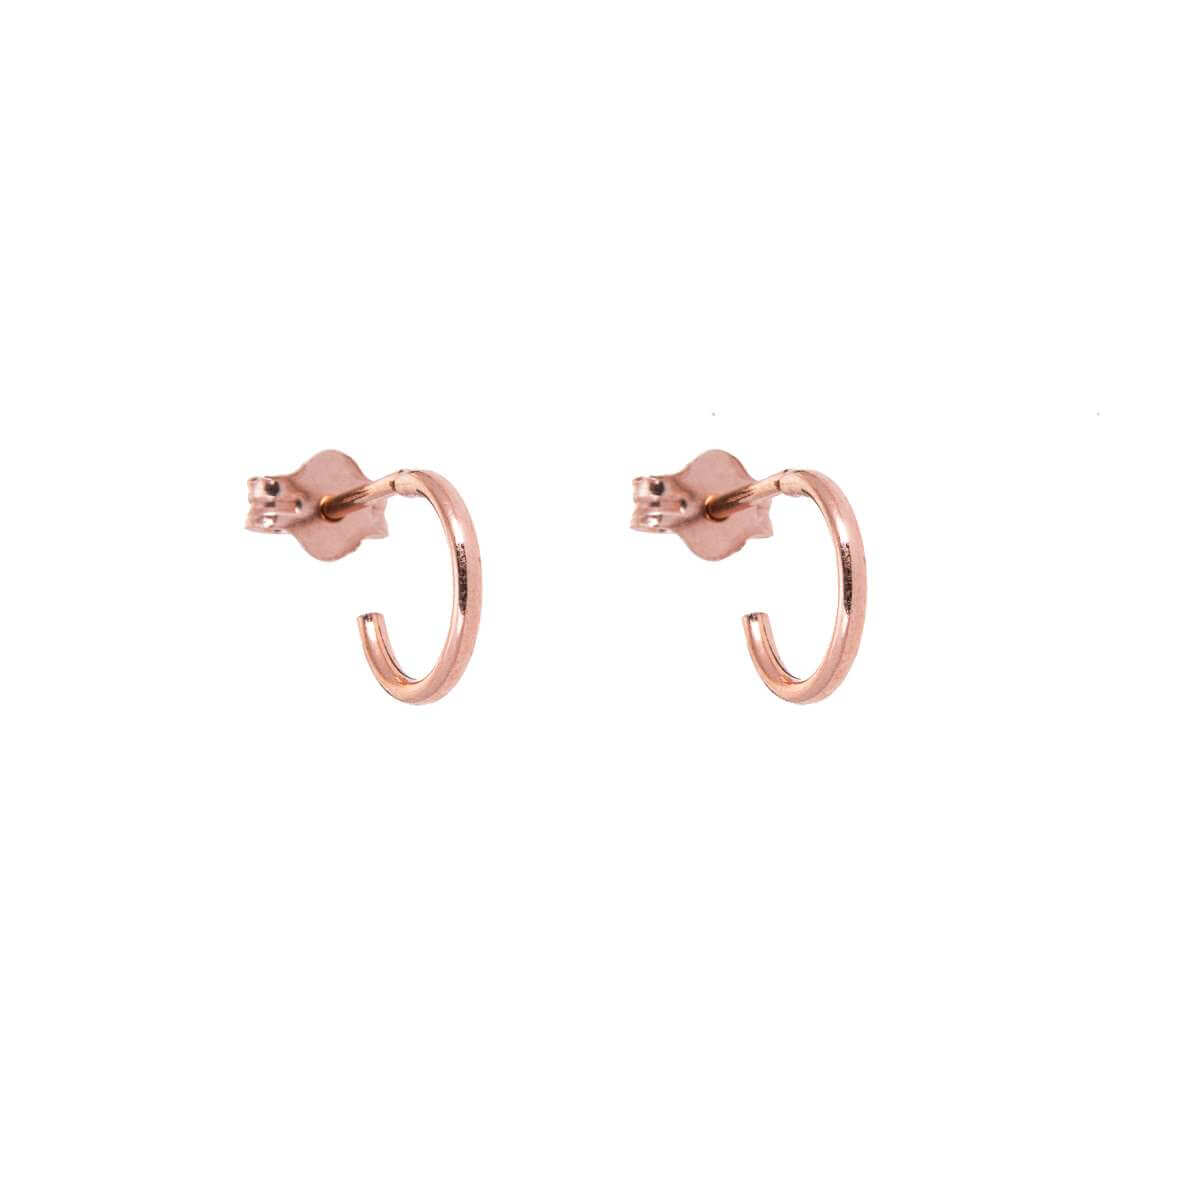 Rose Gold Plated Sterling Silver Open 8mm Hoop Stud Earrings